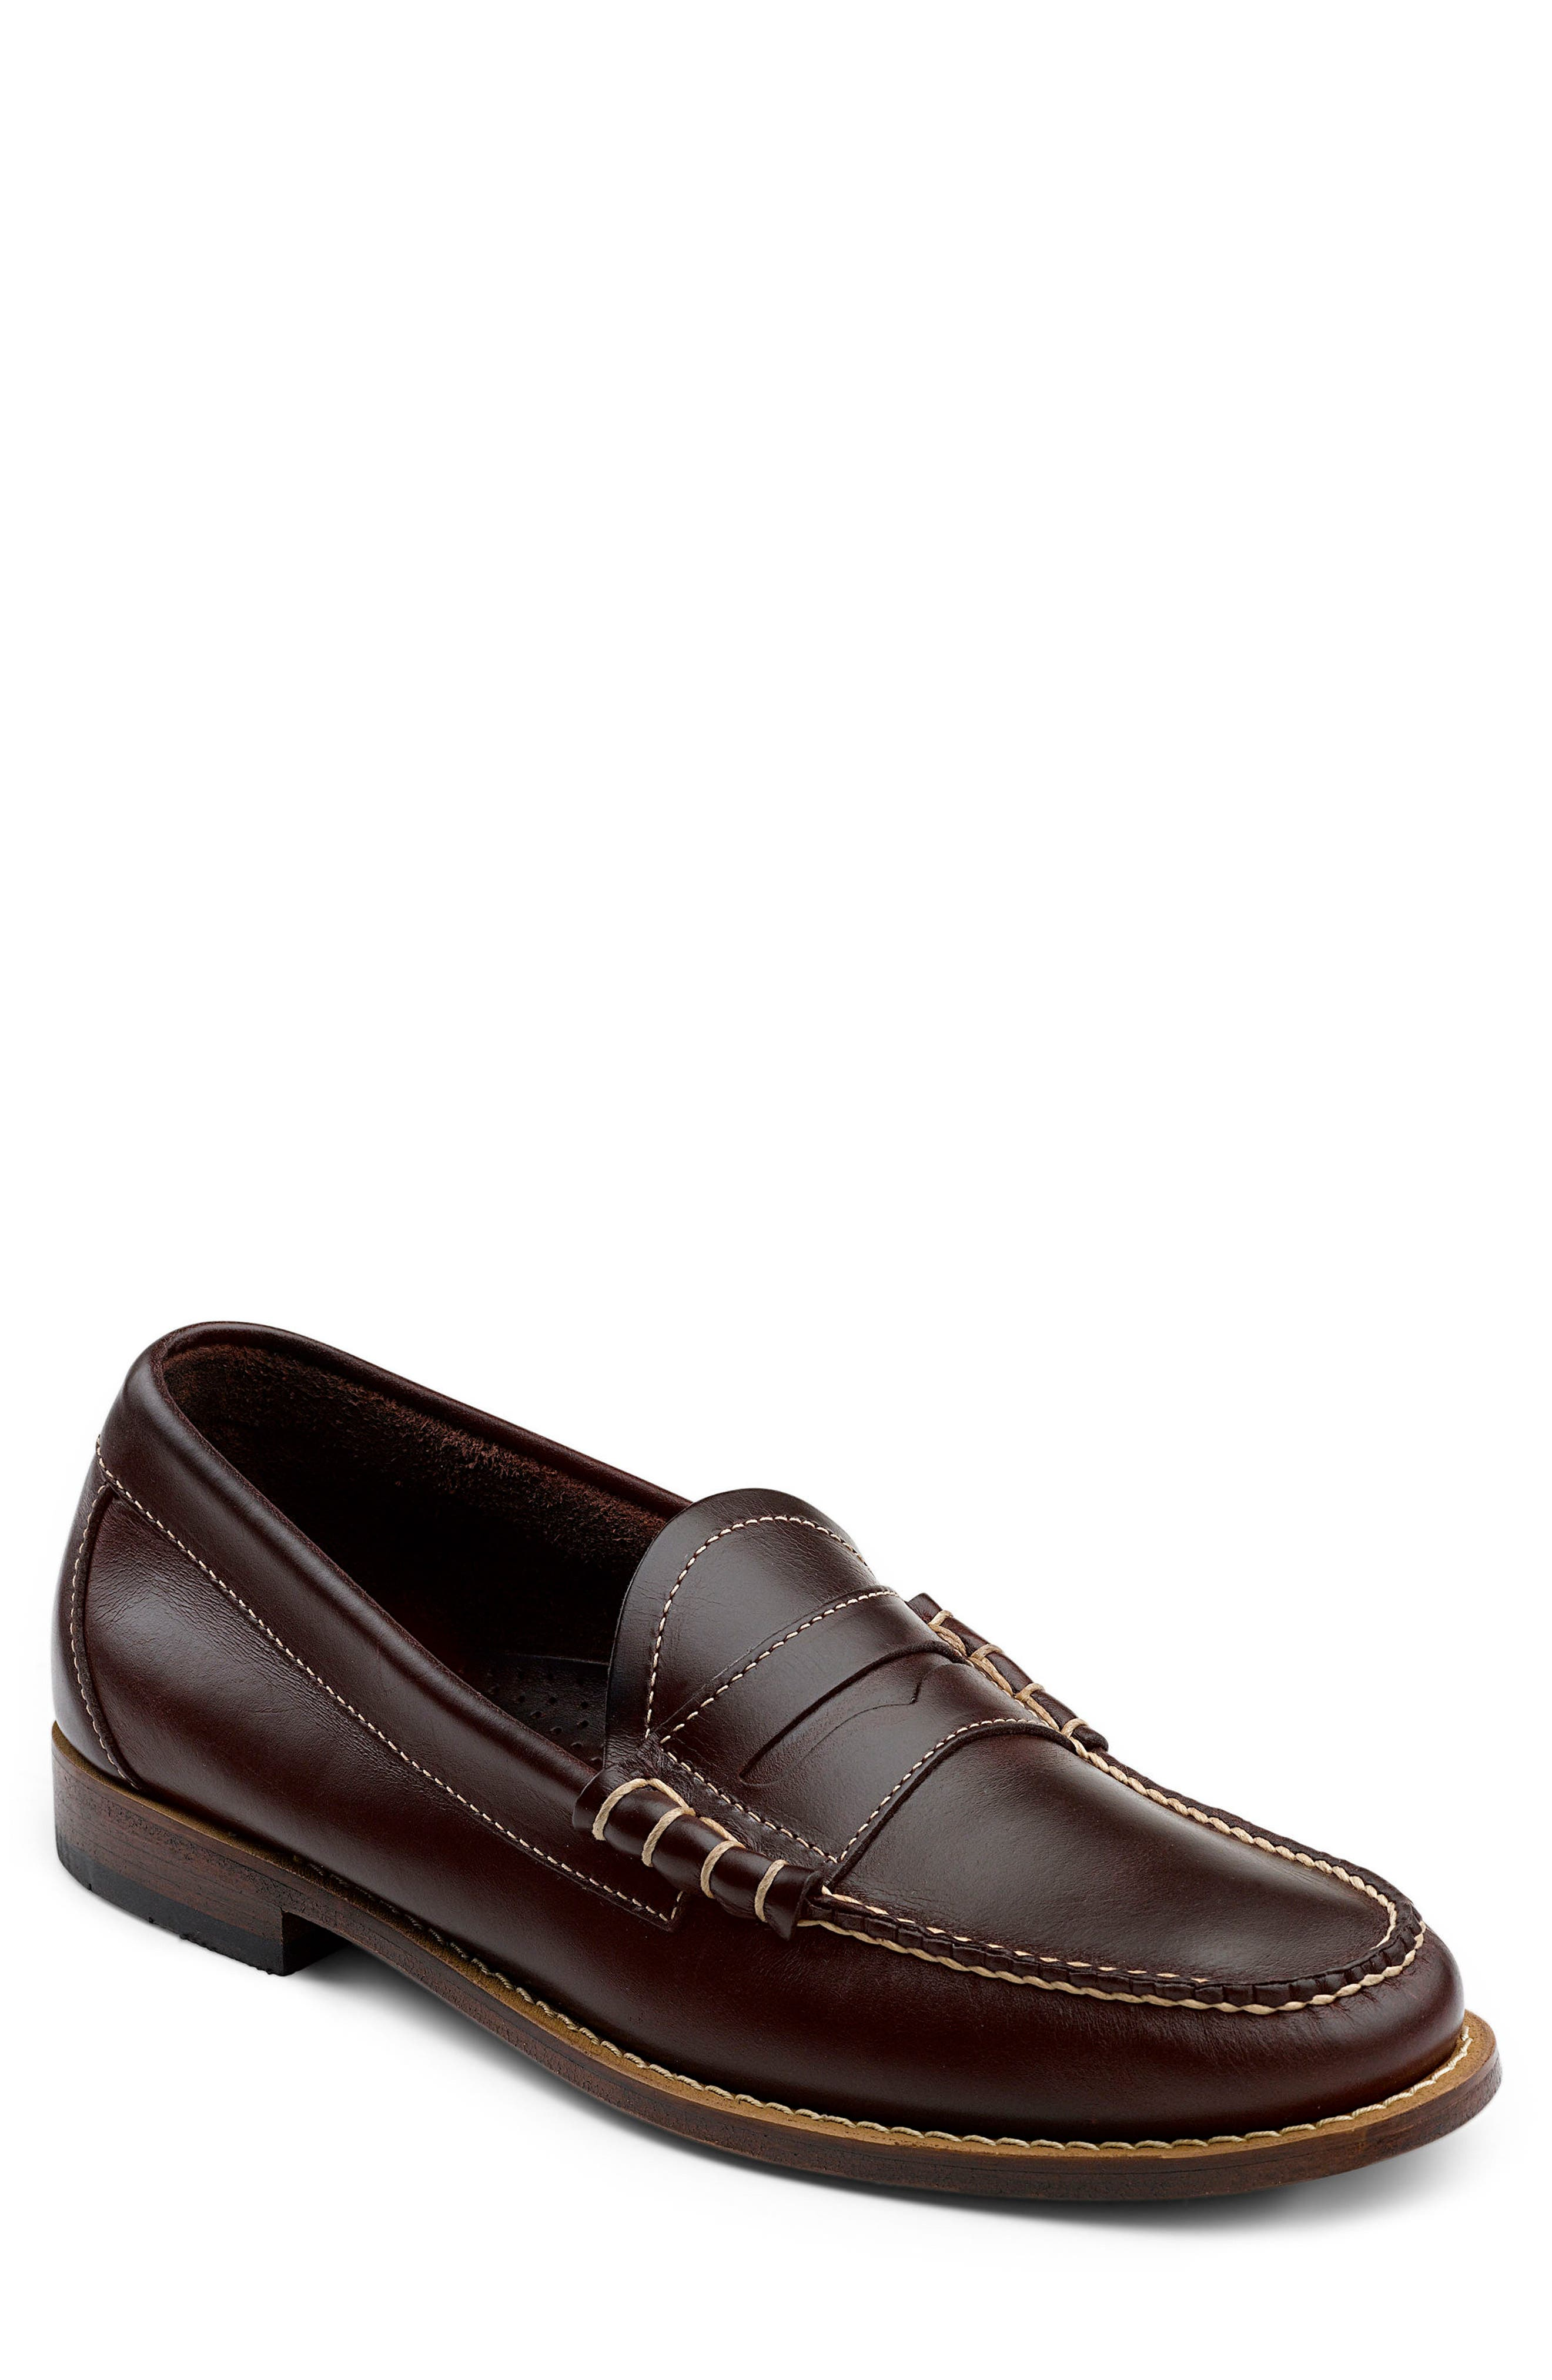 G.H. BASS & CO. Larson - Weejuns Penny Loafer